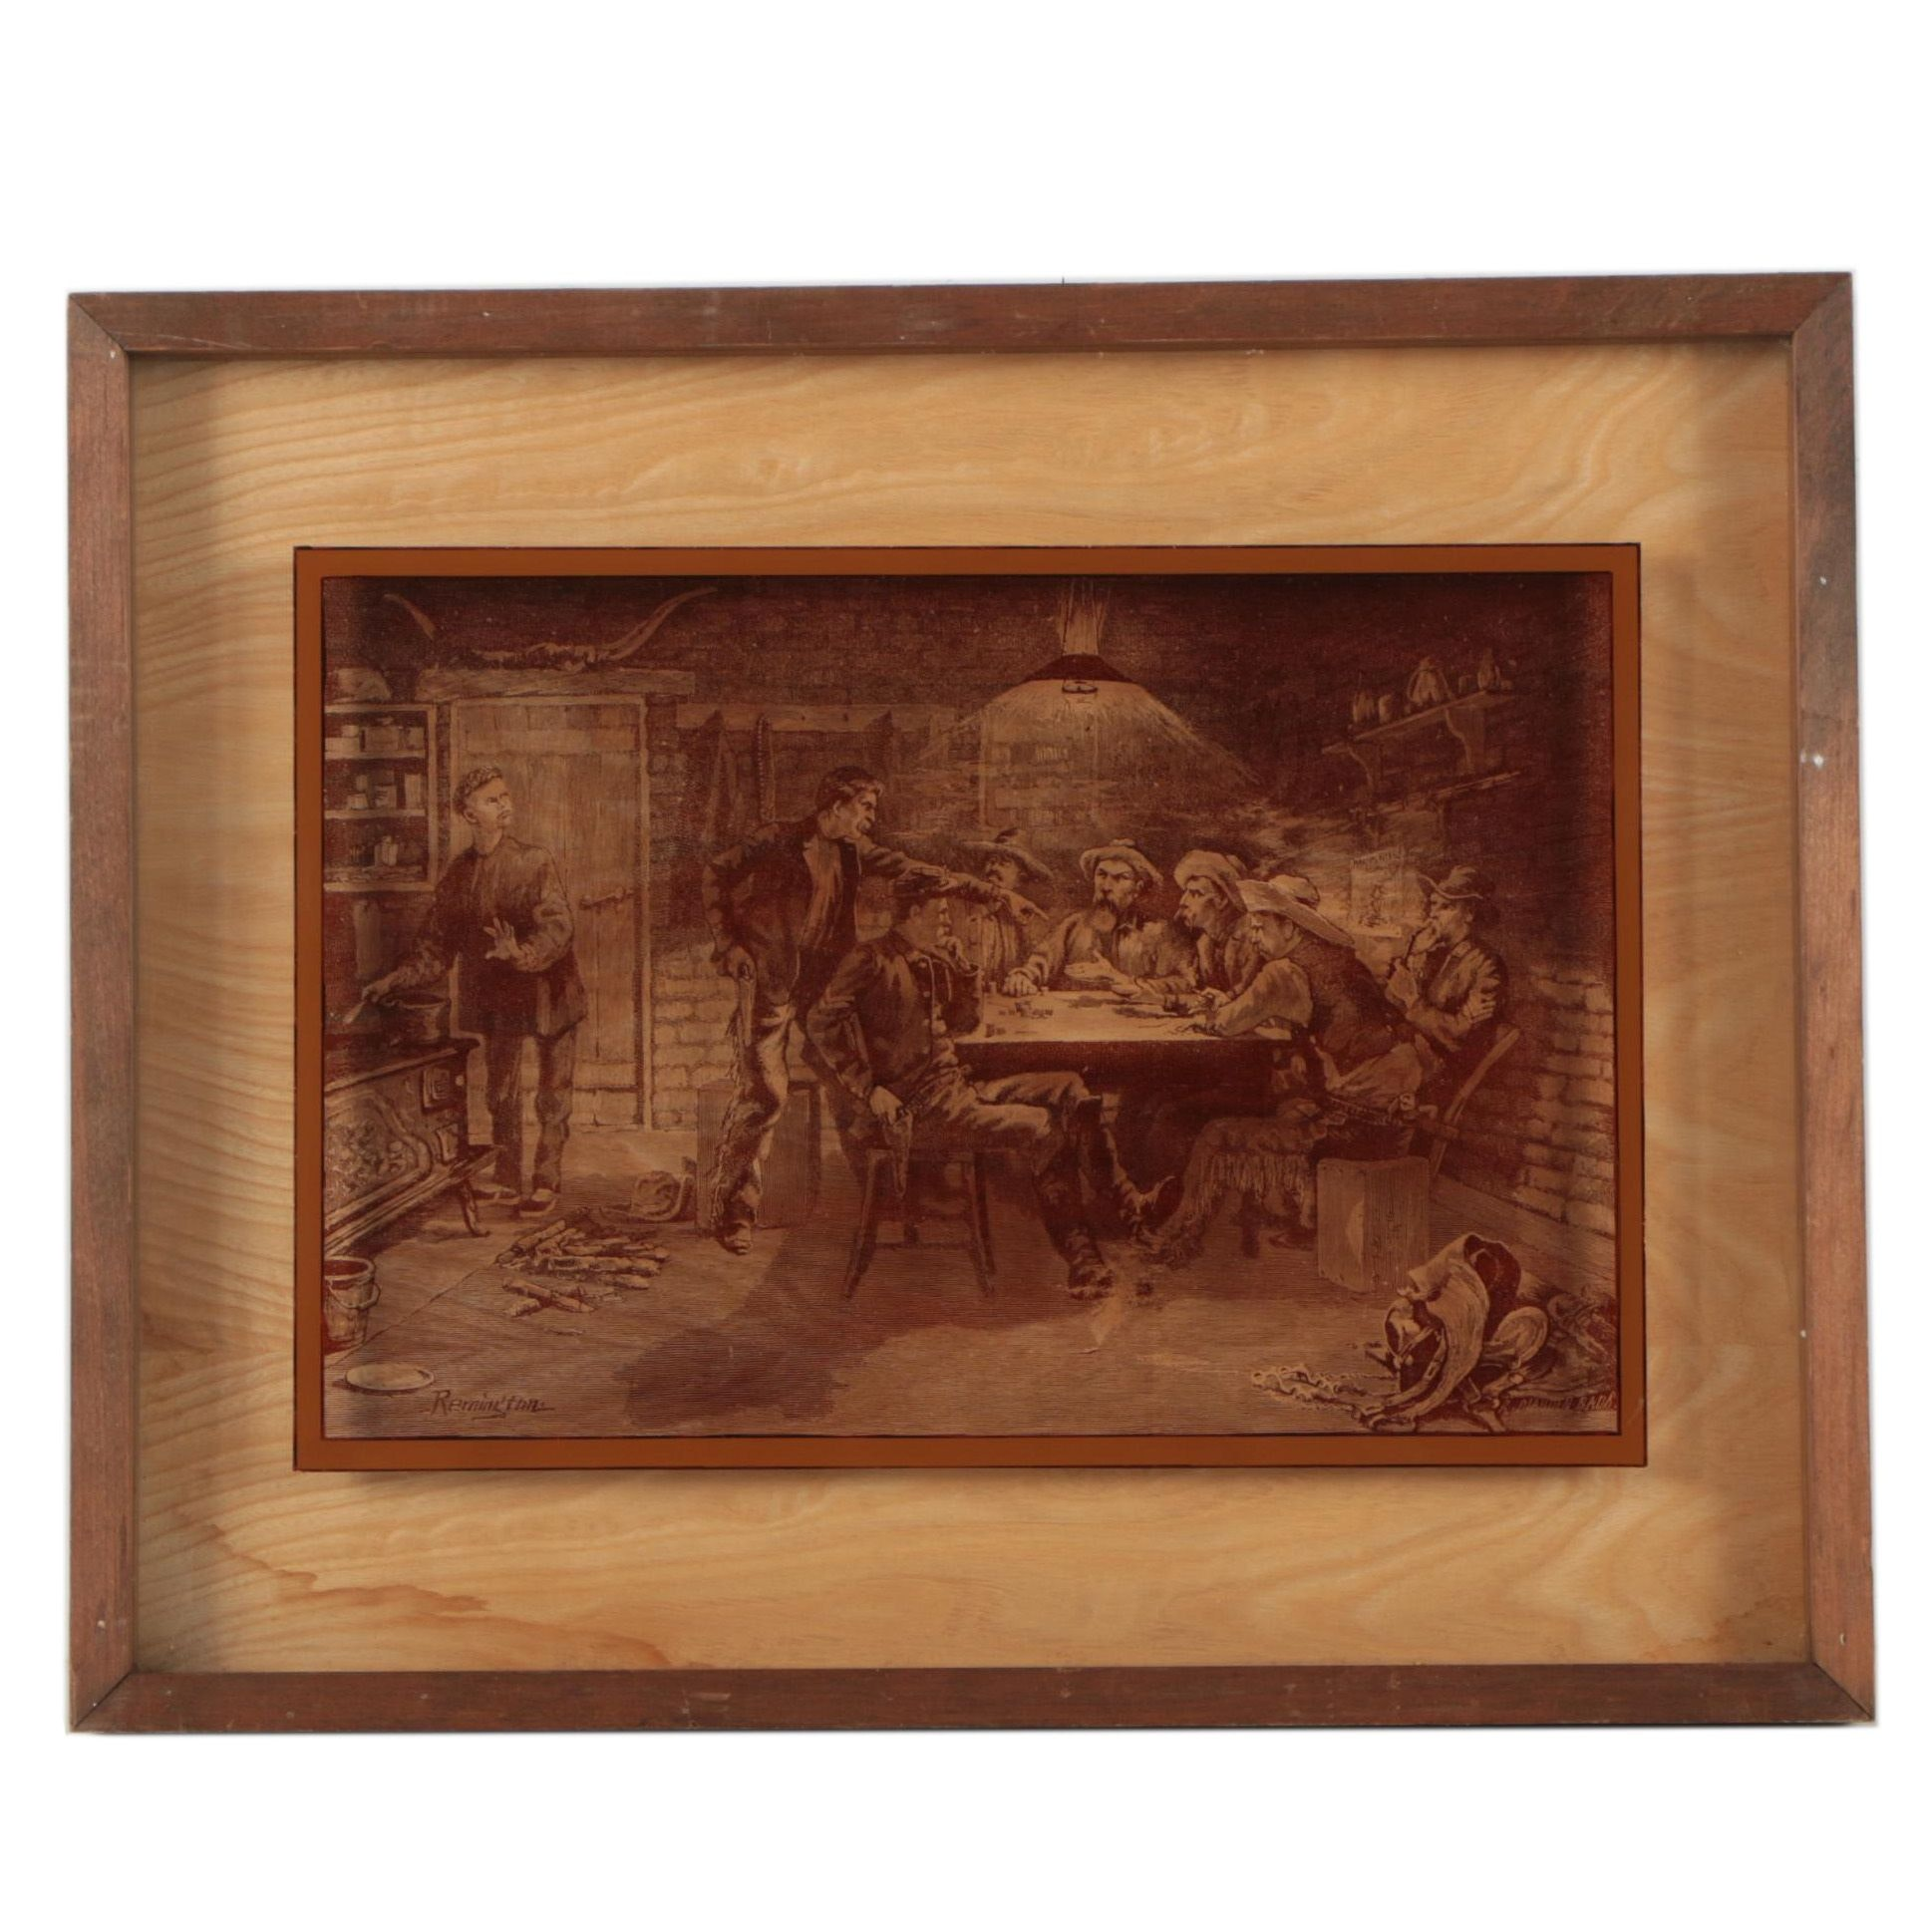 Lucid Lines Inc Reproduction Photograph on Glass after Frederick Remington